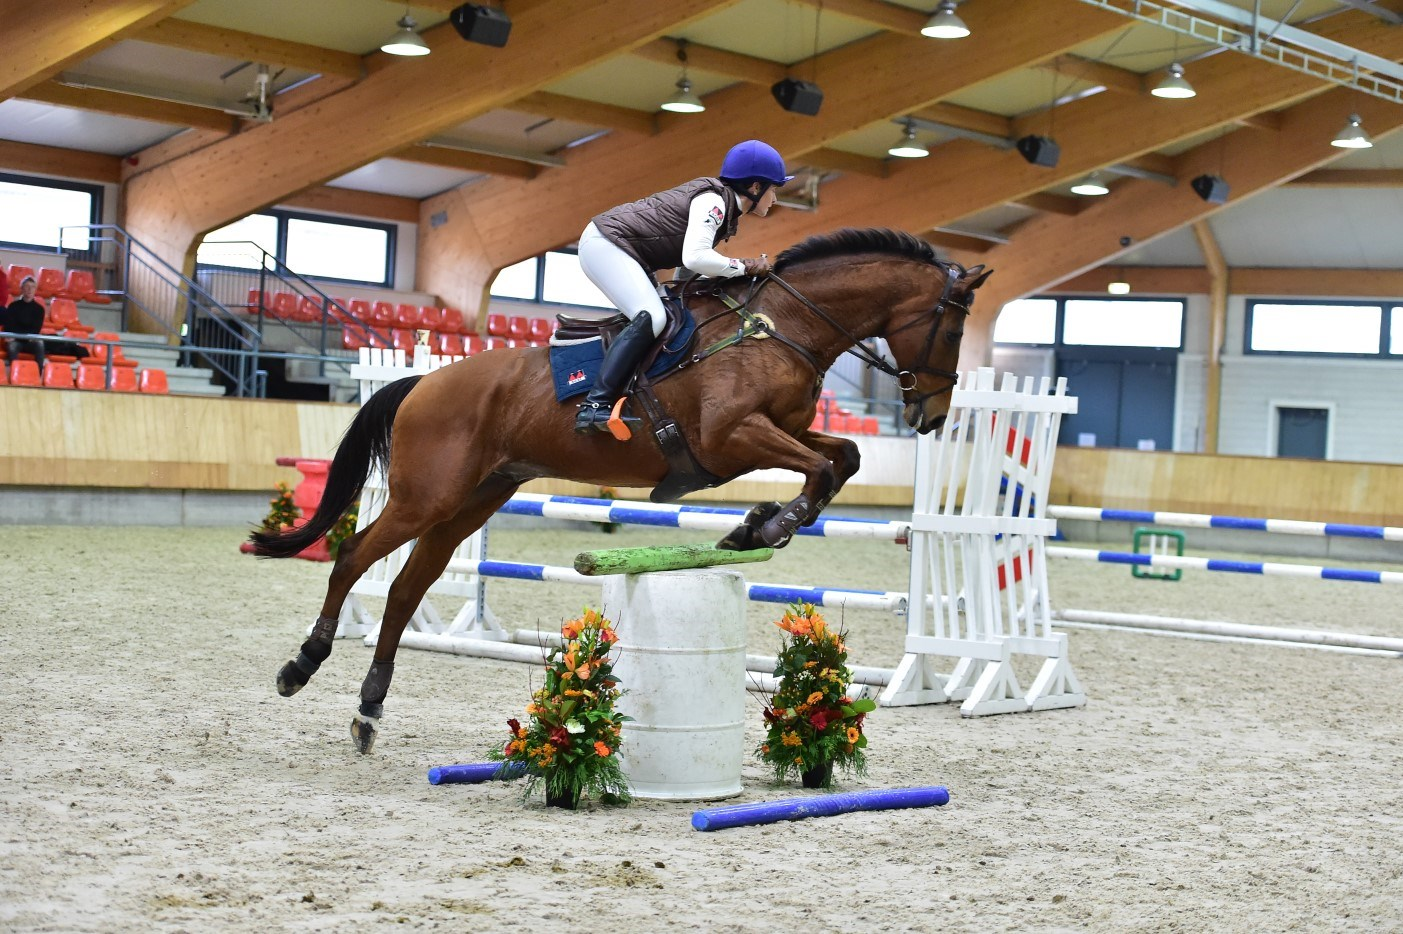 Olympische eventing amazones op KNHS Trainersseminar 2019 *video*